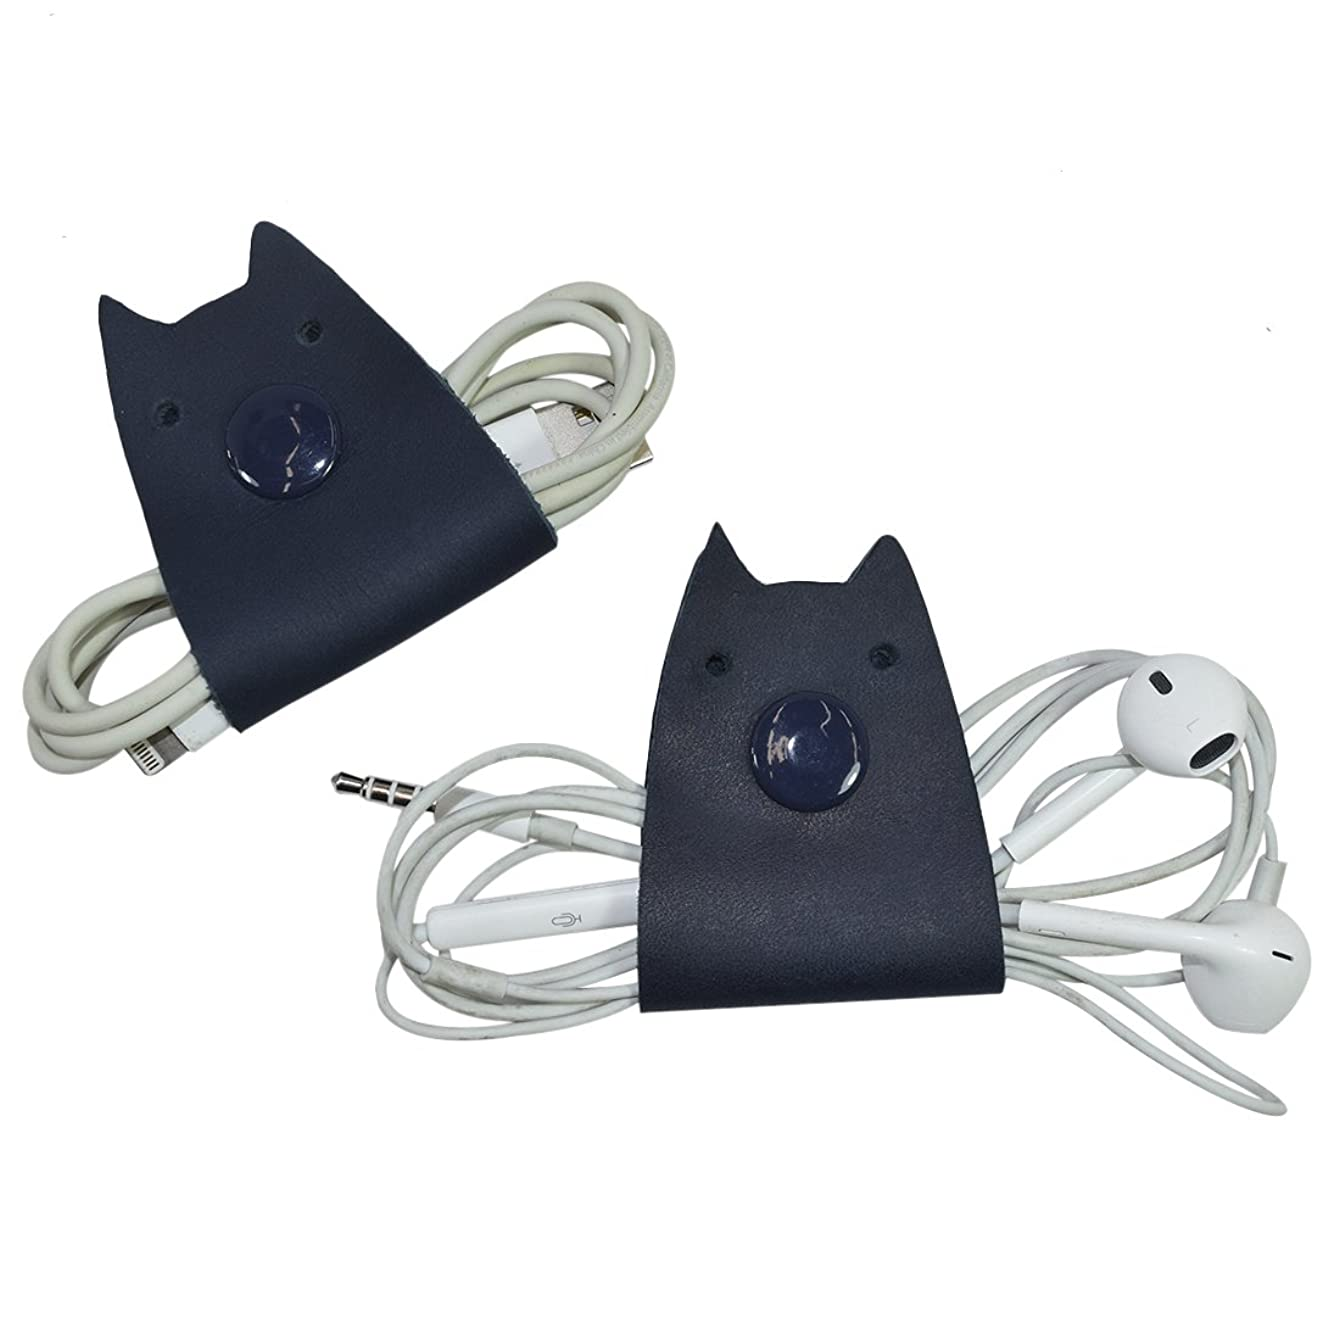 Cat Shaped Cord Keeper (Cord Clam) 2-Pack Handmade by Hide & Drink :: Slate Blue